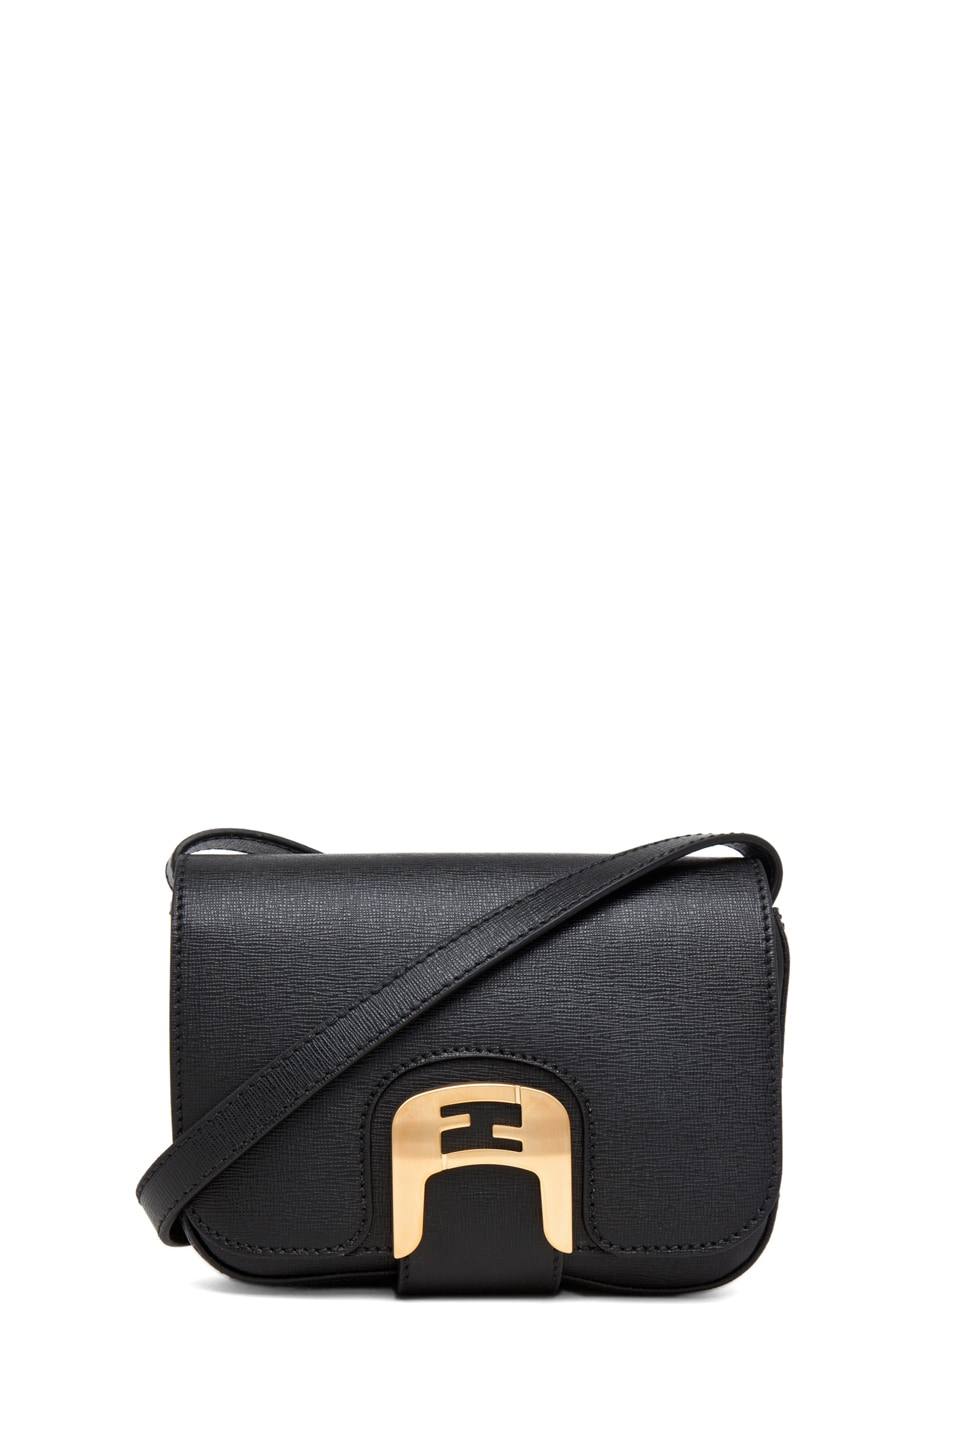 Image 1 of Fendi Messenger in Black